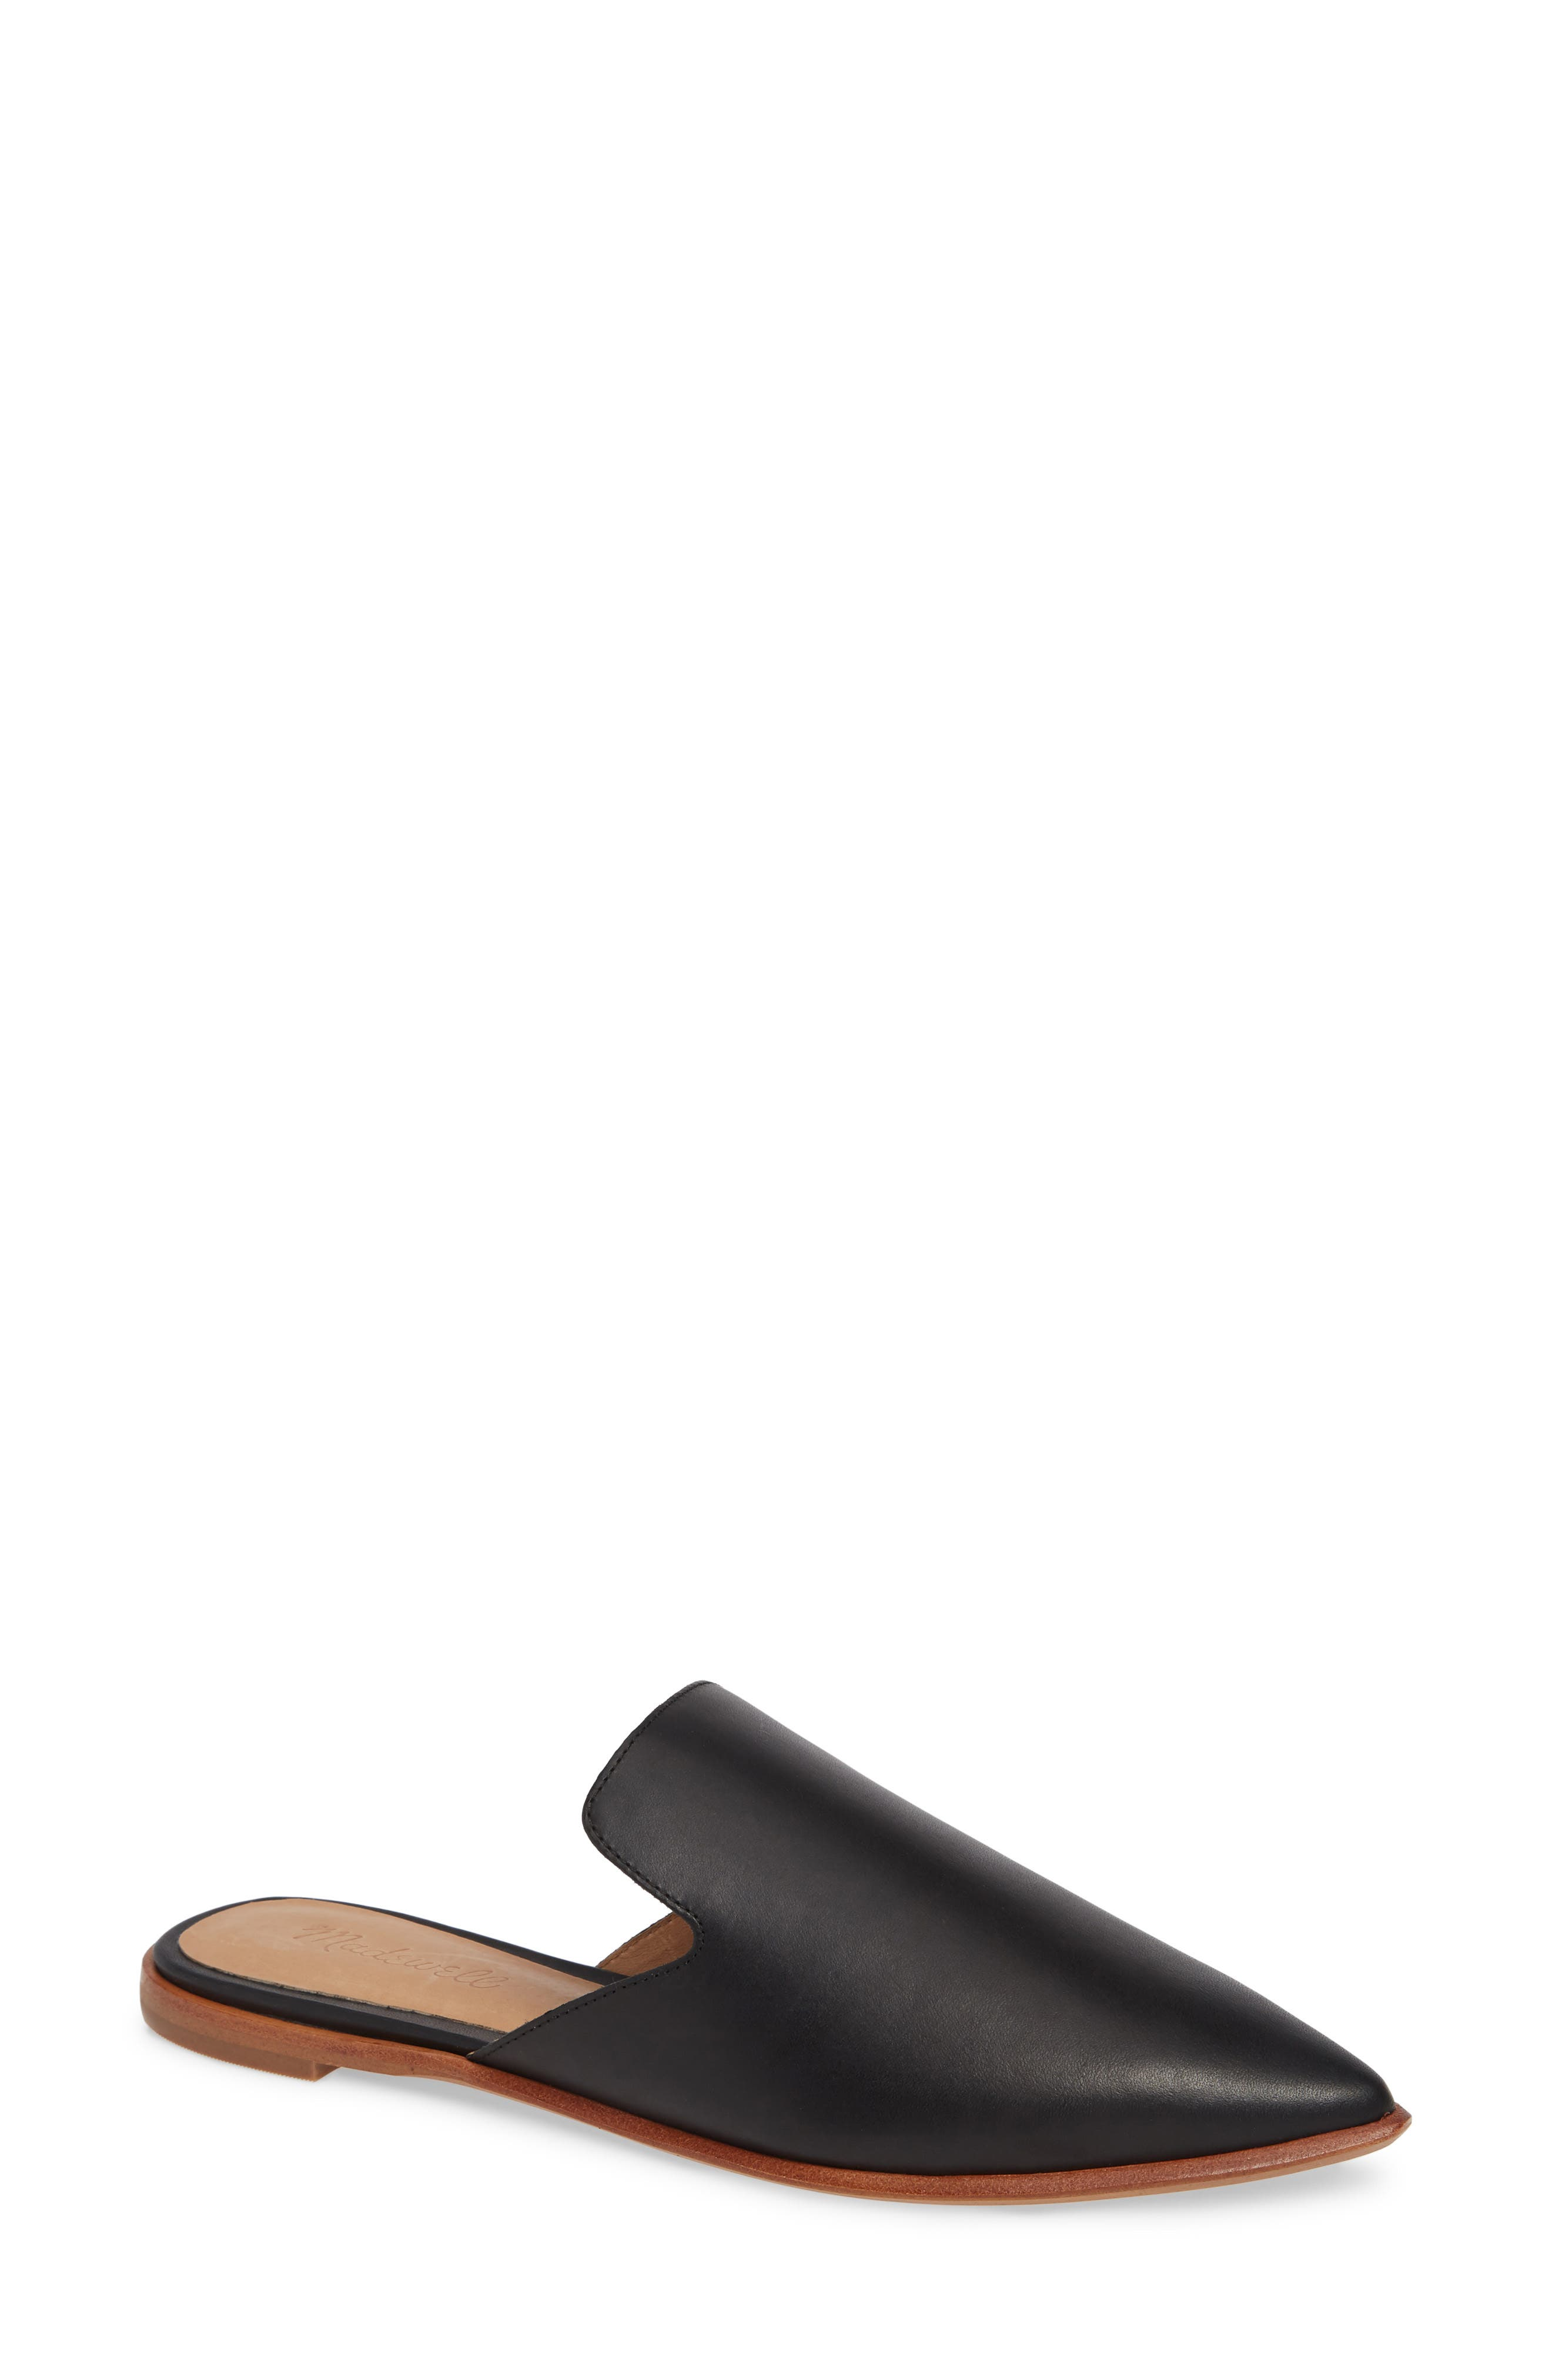 MADEWELL, The Gemma Mule, Main thumbnail 1, color, TRUE BLACK LEATHER